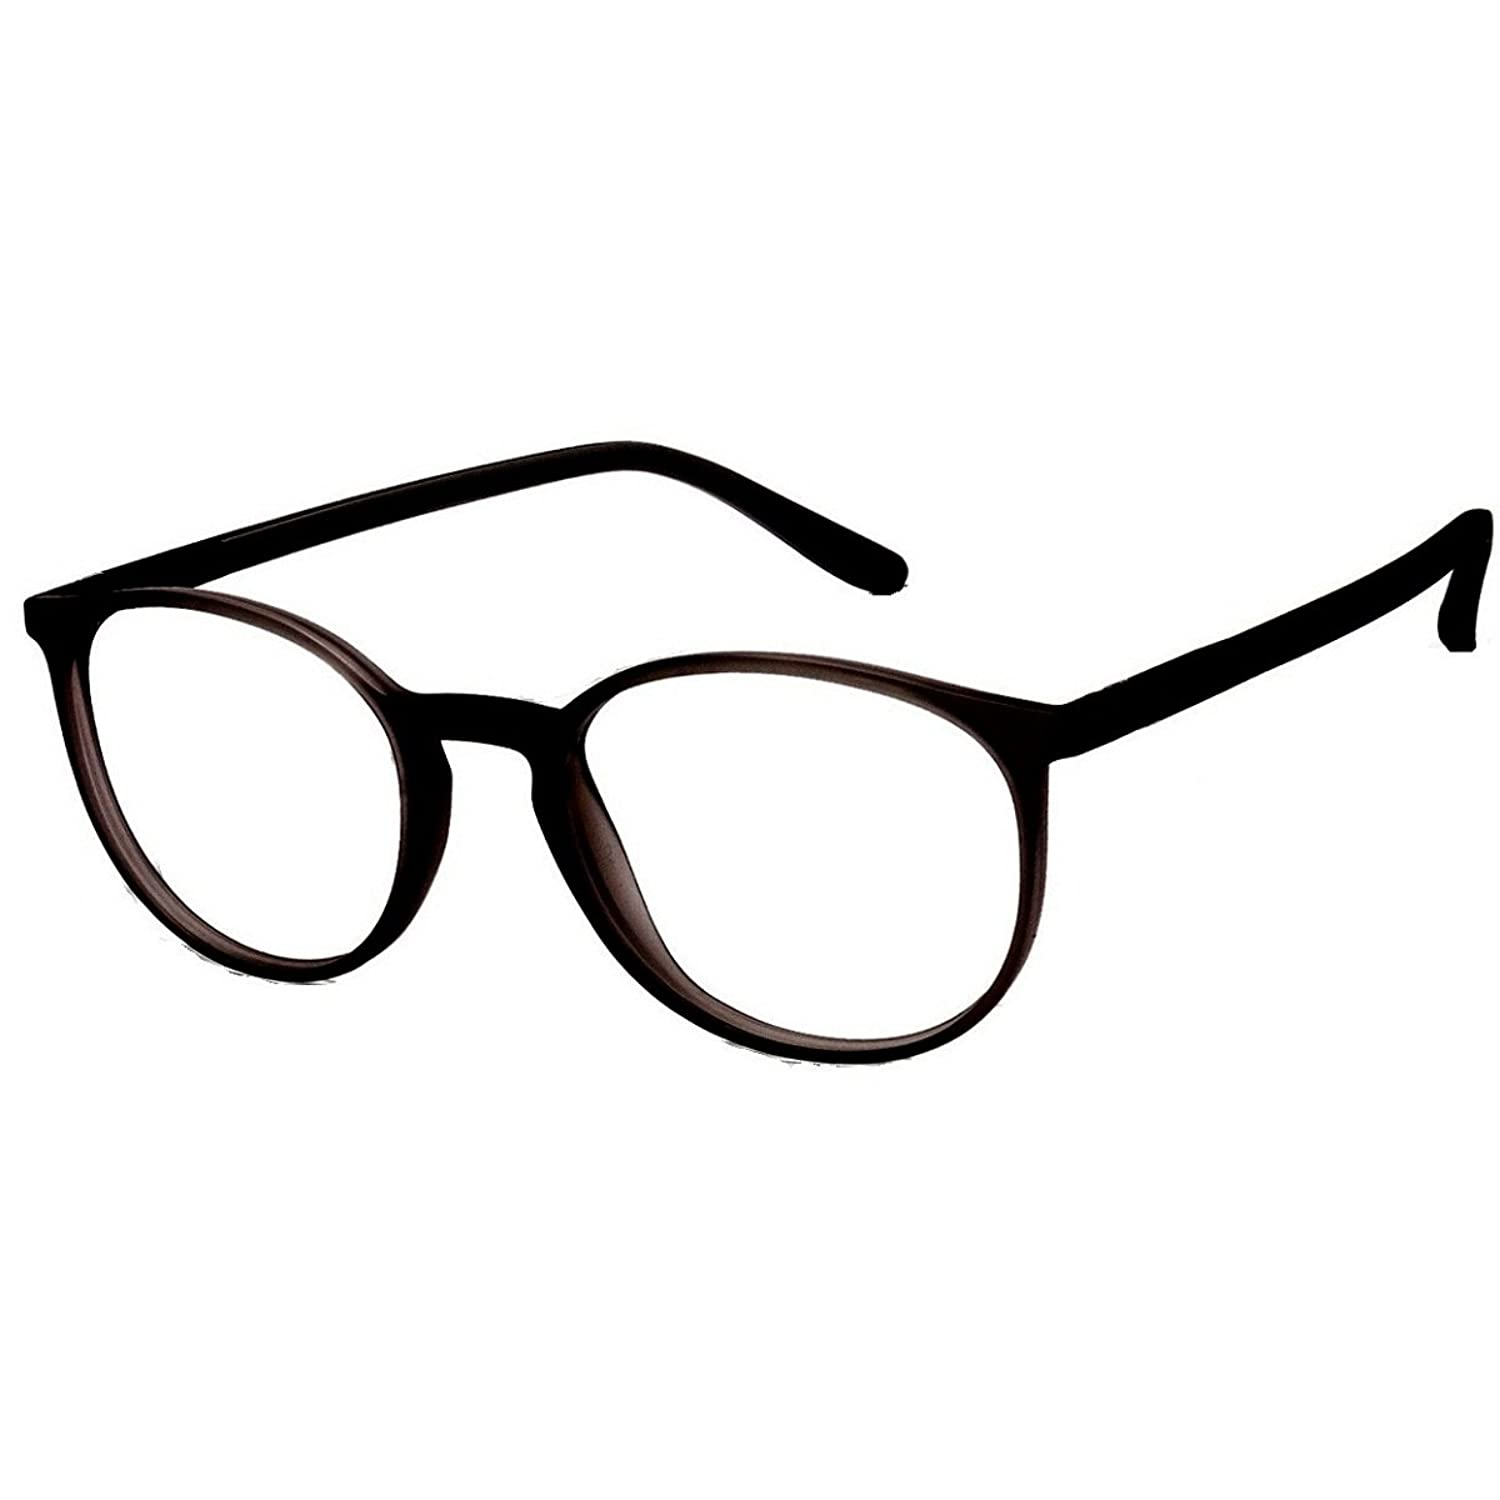 890593da53f Glasses For Men  Buy Glasses For Men online at best prices in India ...